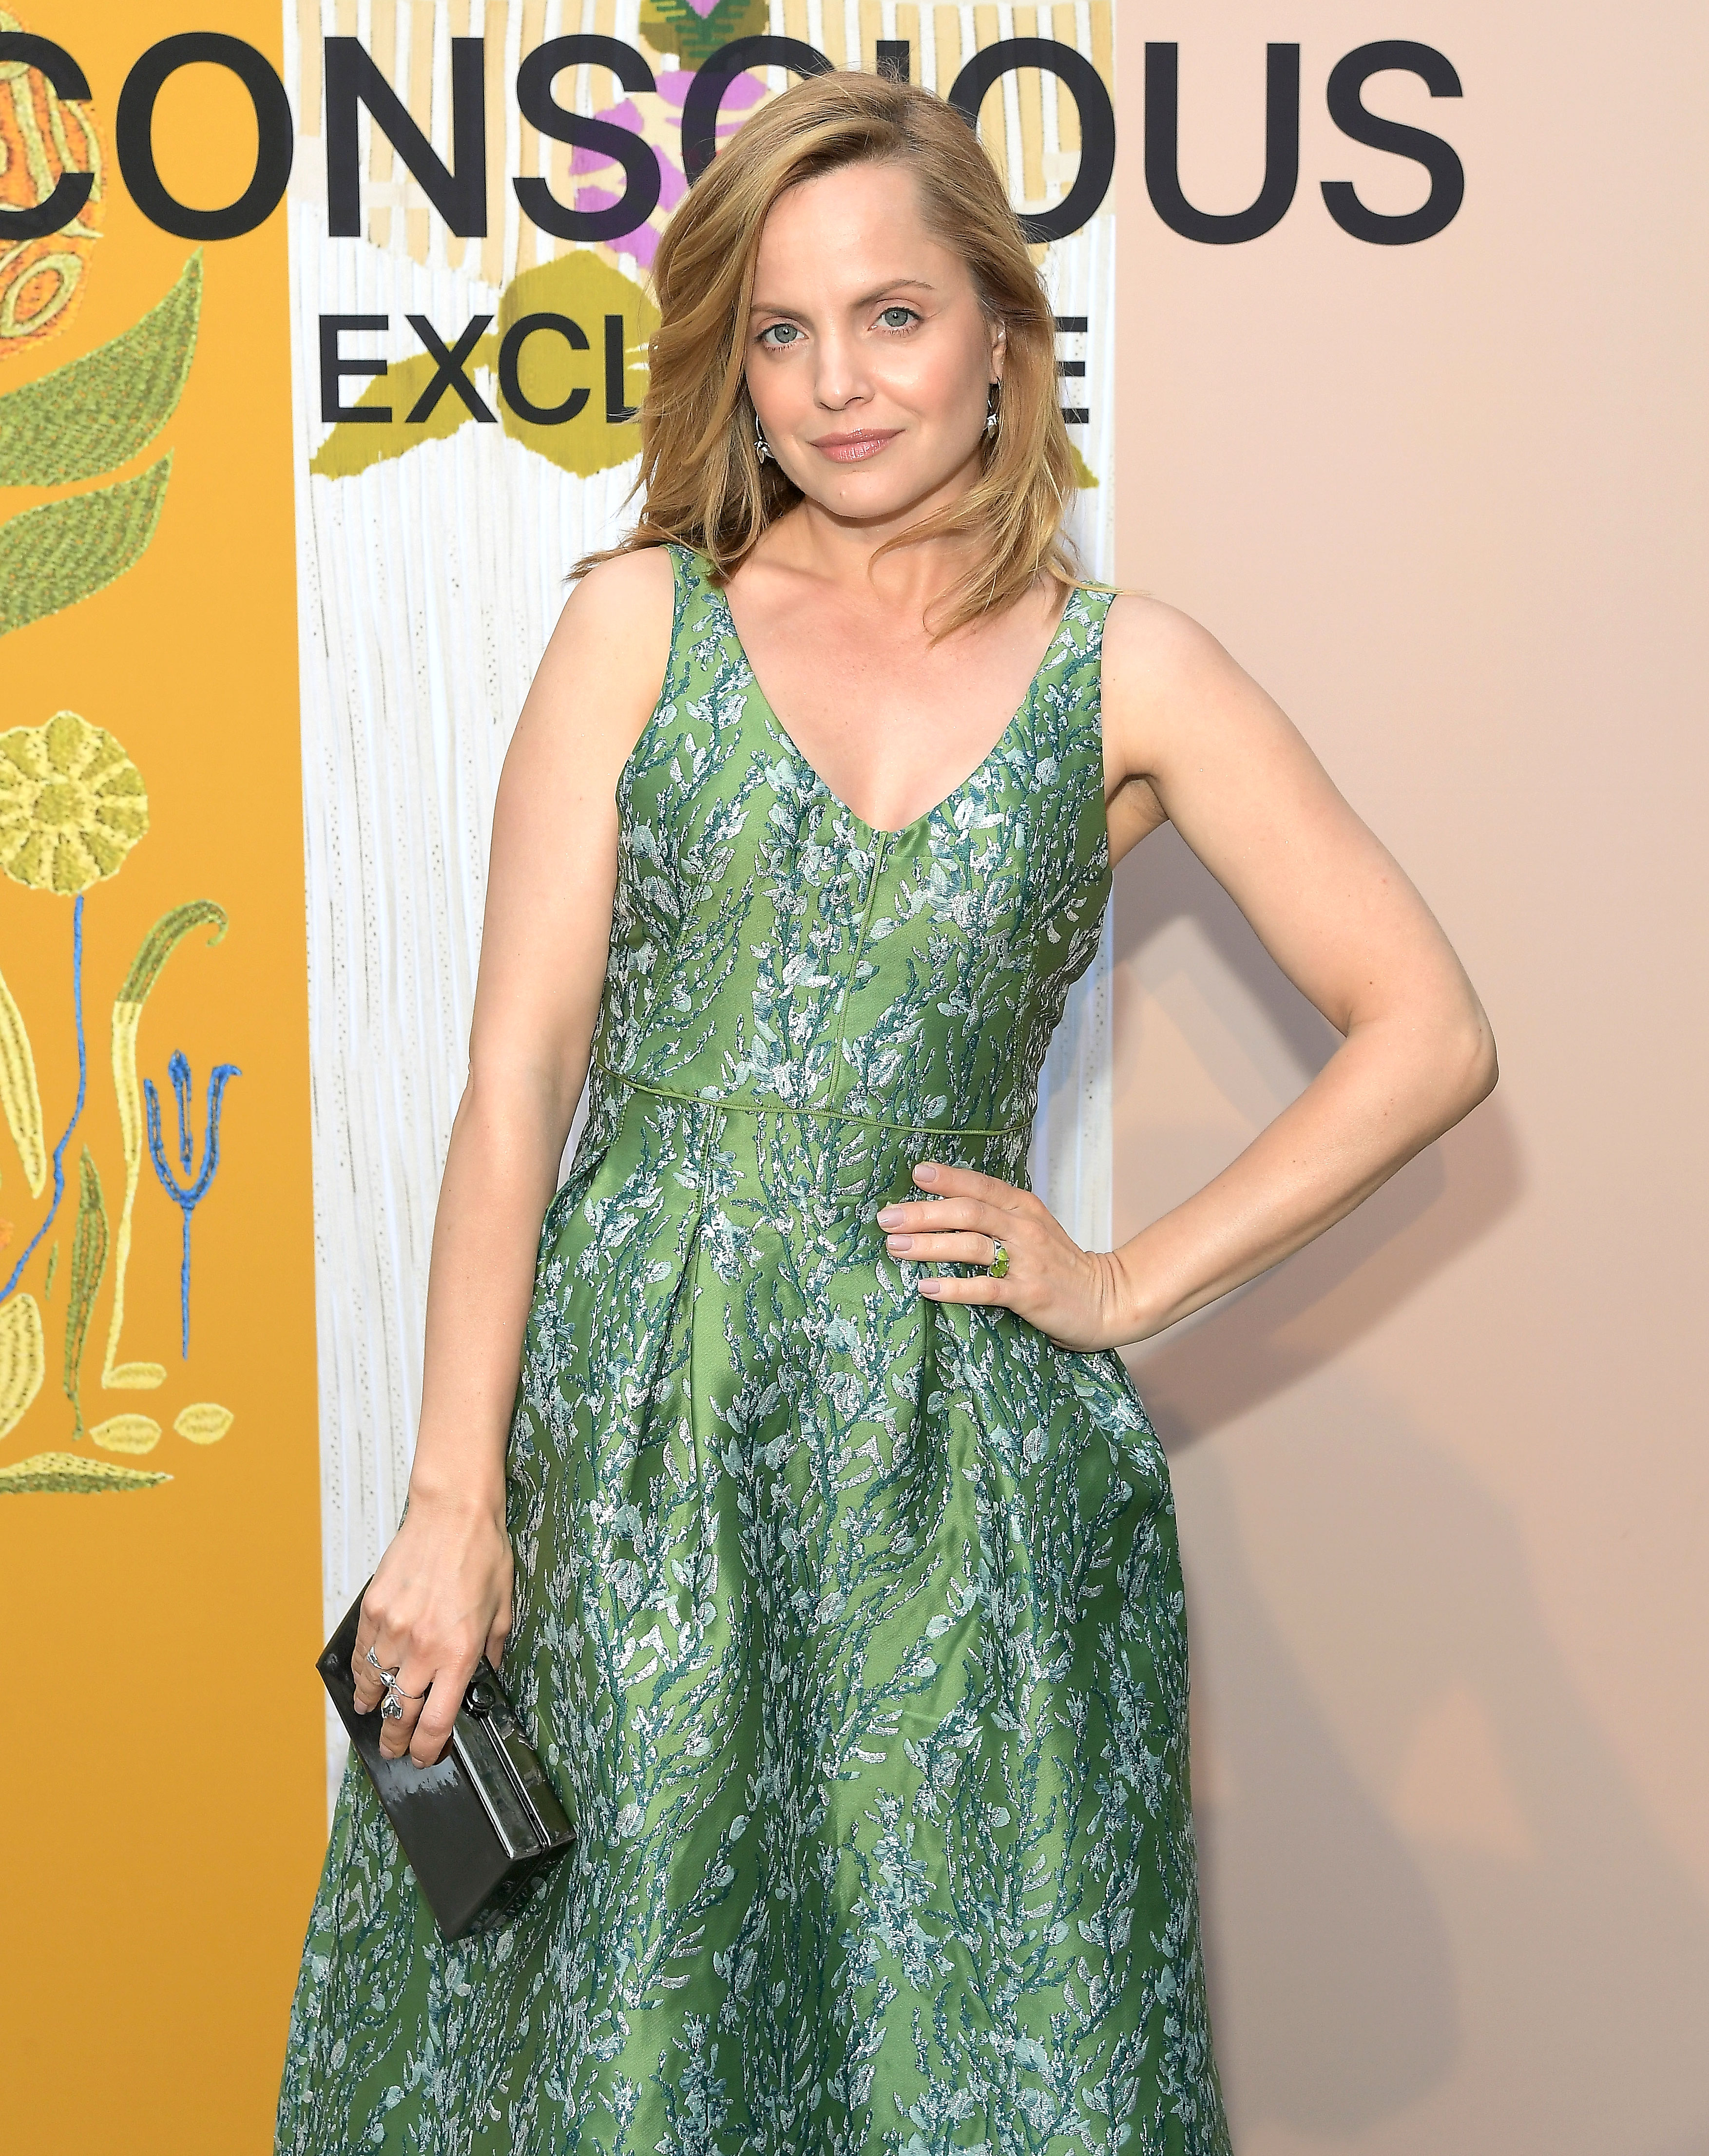 Mena Suvari - attends the H&M celebration of 2018 Conscious Exclusive collection at John Lautner's Harvey House on April 5, 2018 in Los Angeles, California.